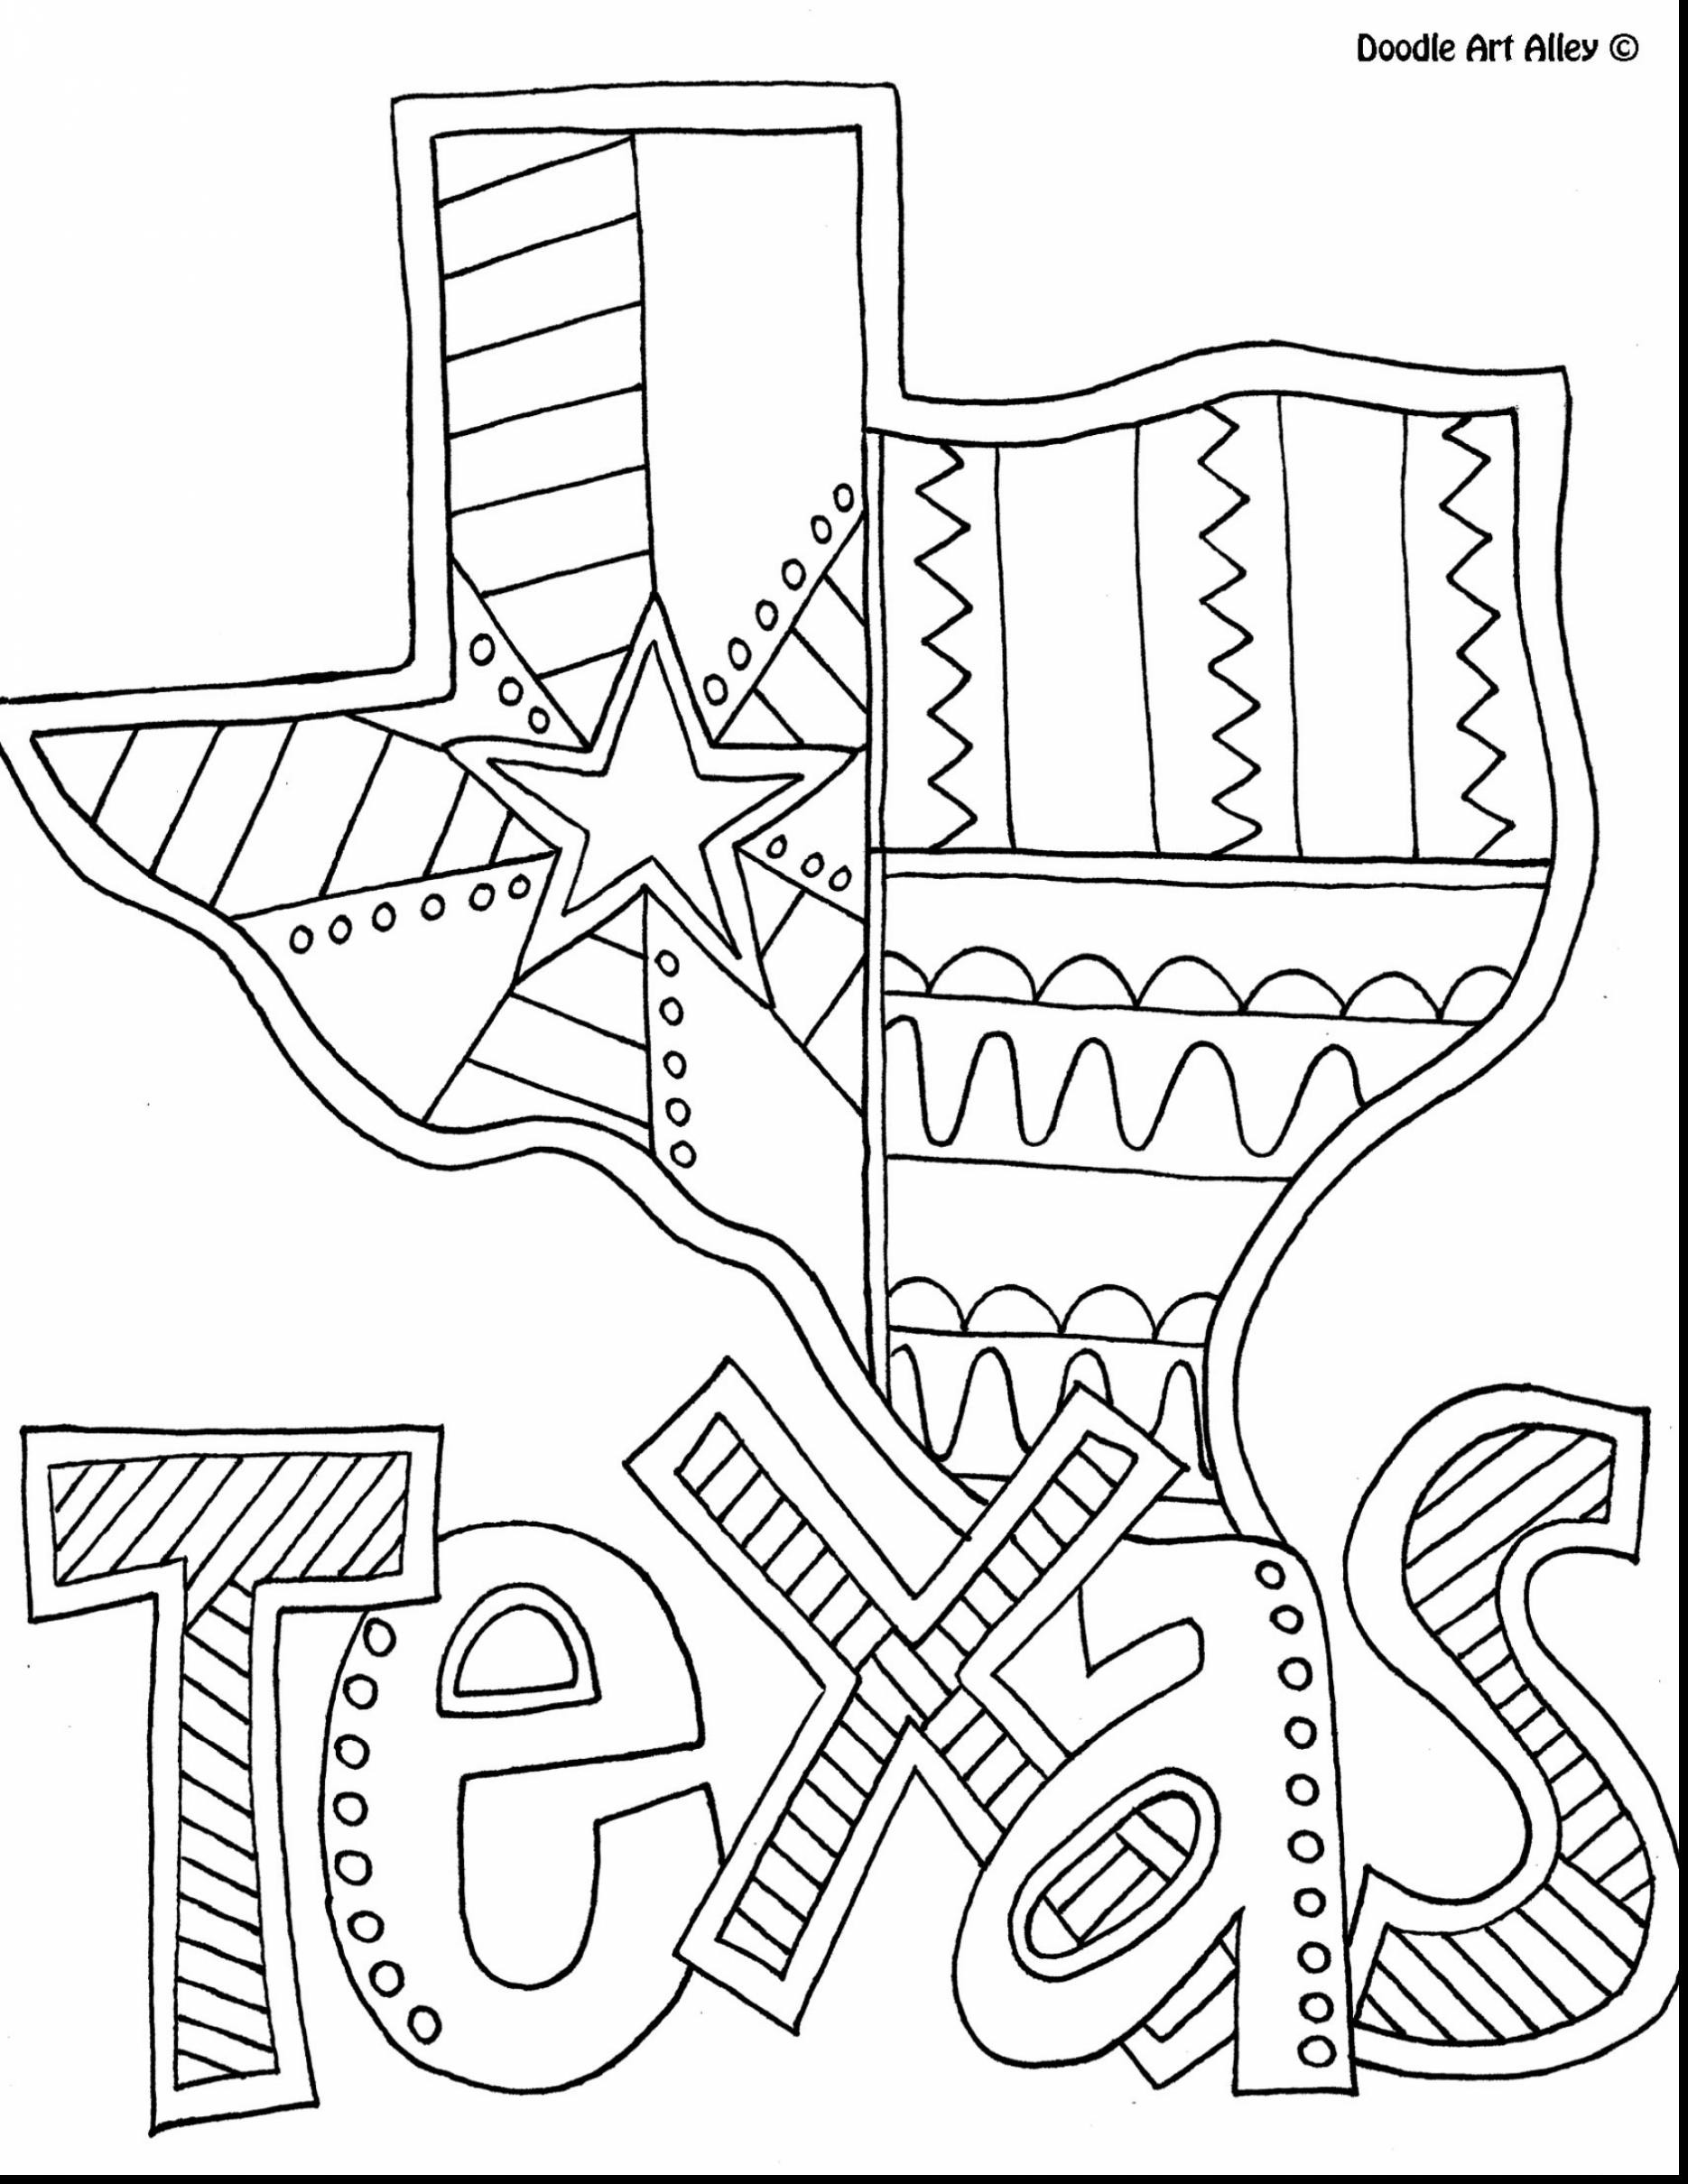 texas state seal coloring page texas state quarter coloring page 50 states usa coloring seal texas state page